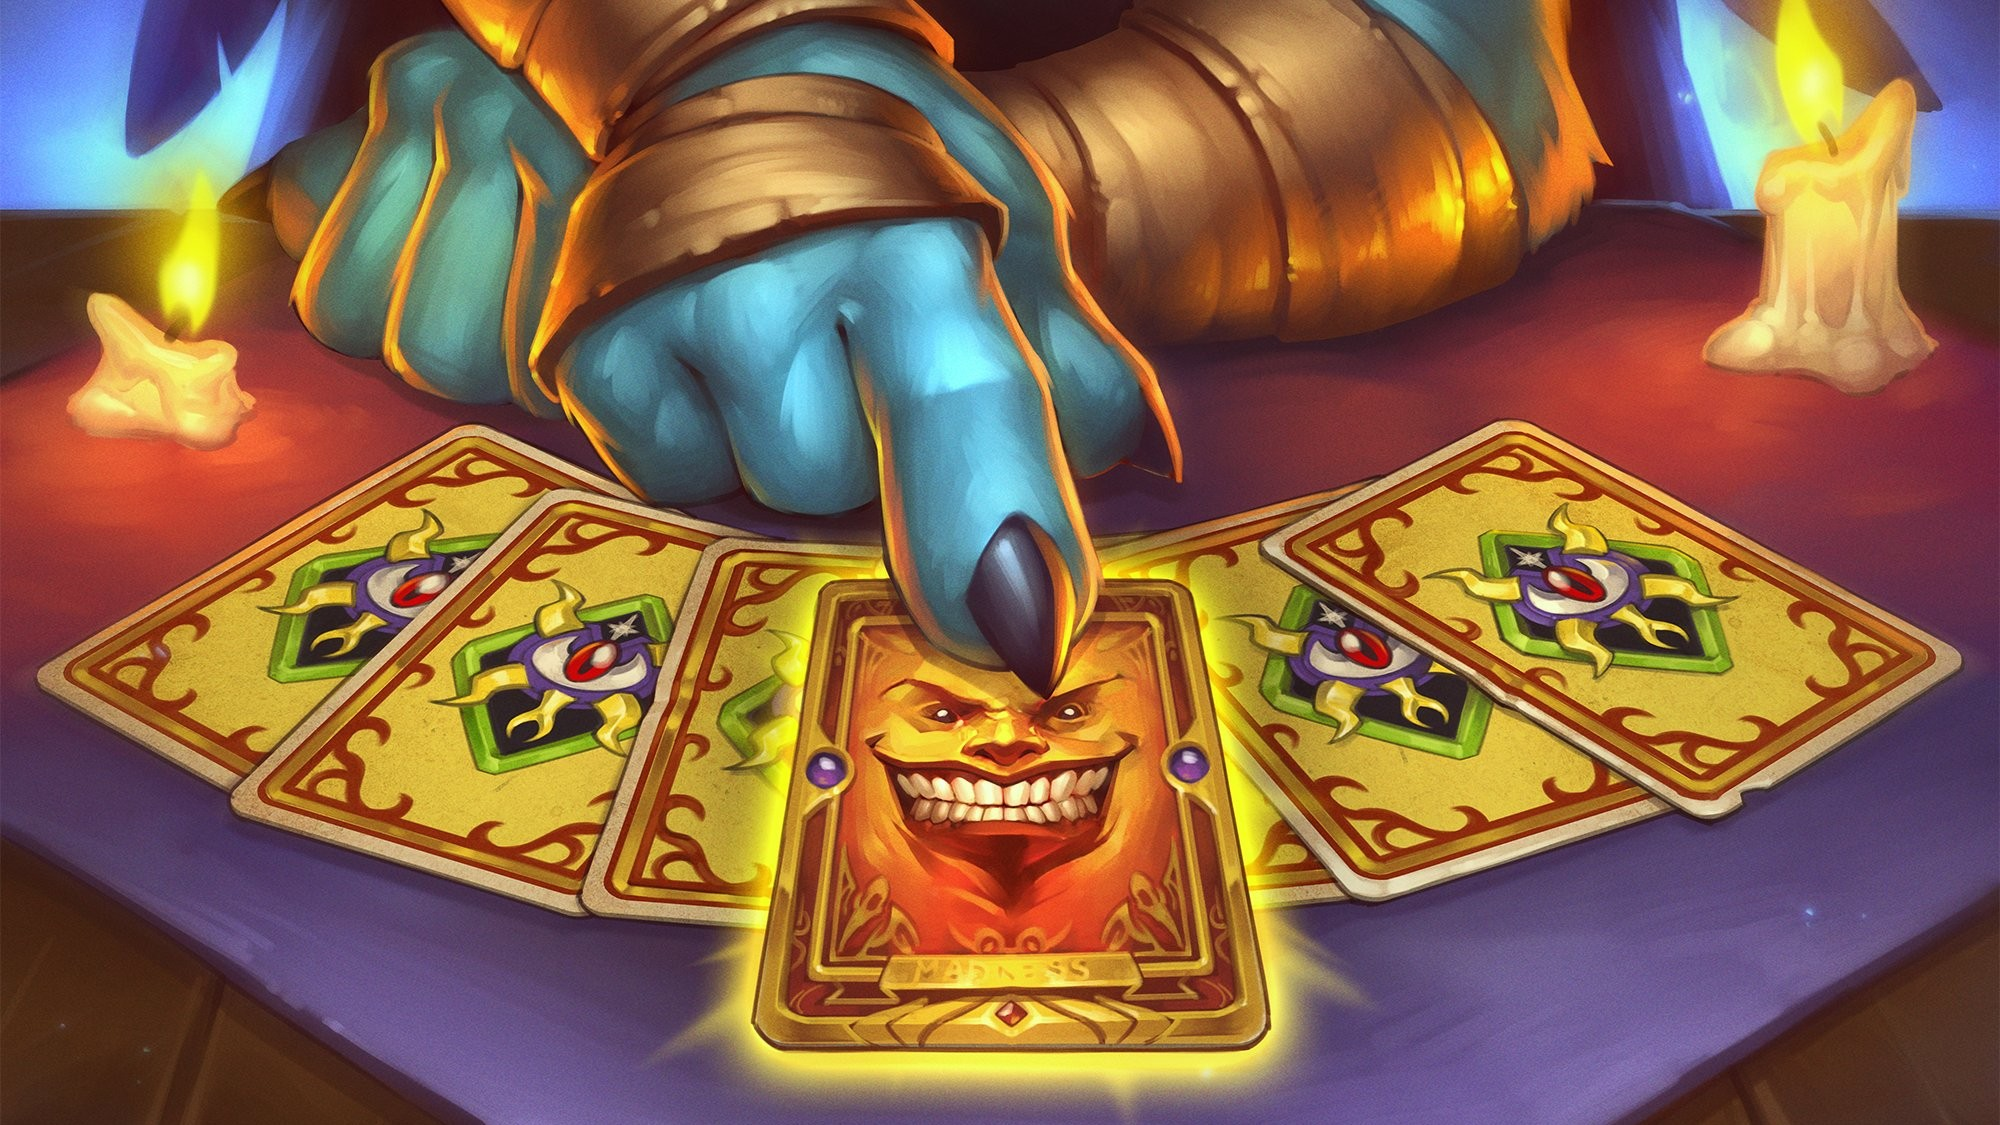 Hearthstone's overdue rebalance is coming 'early next week'